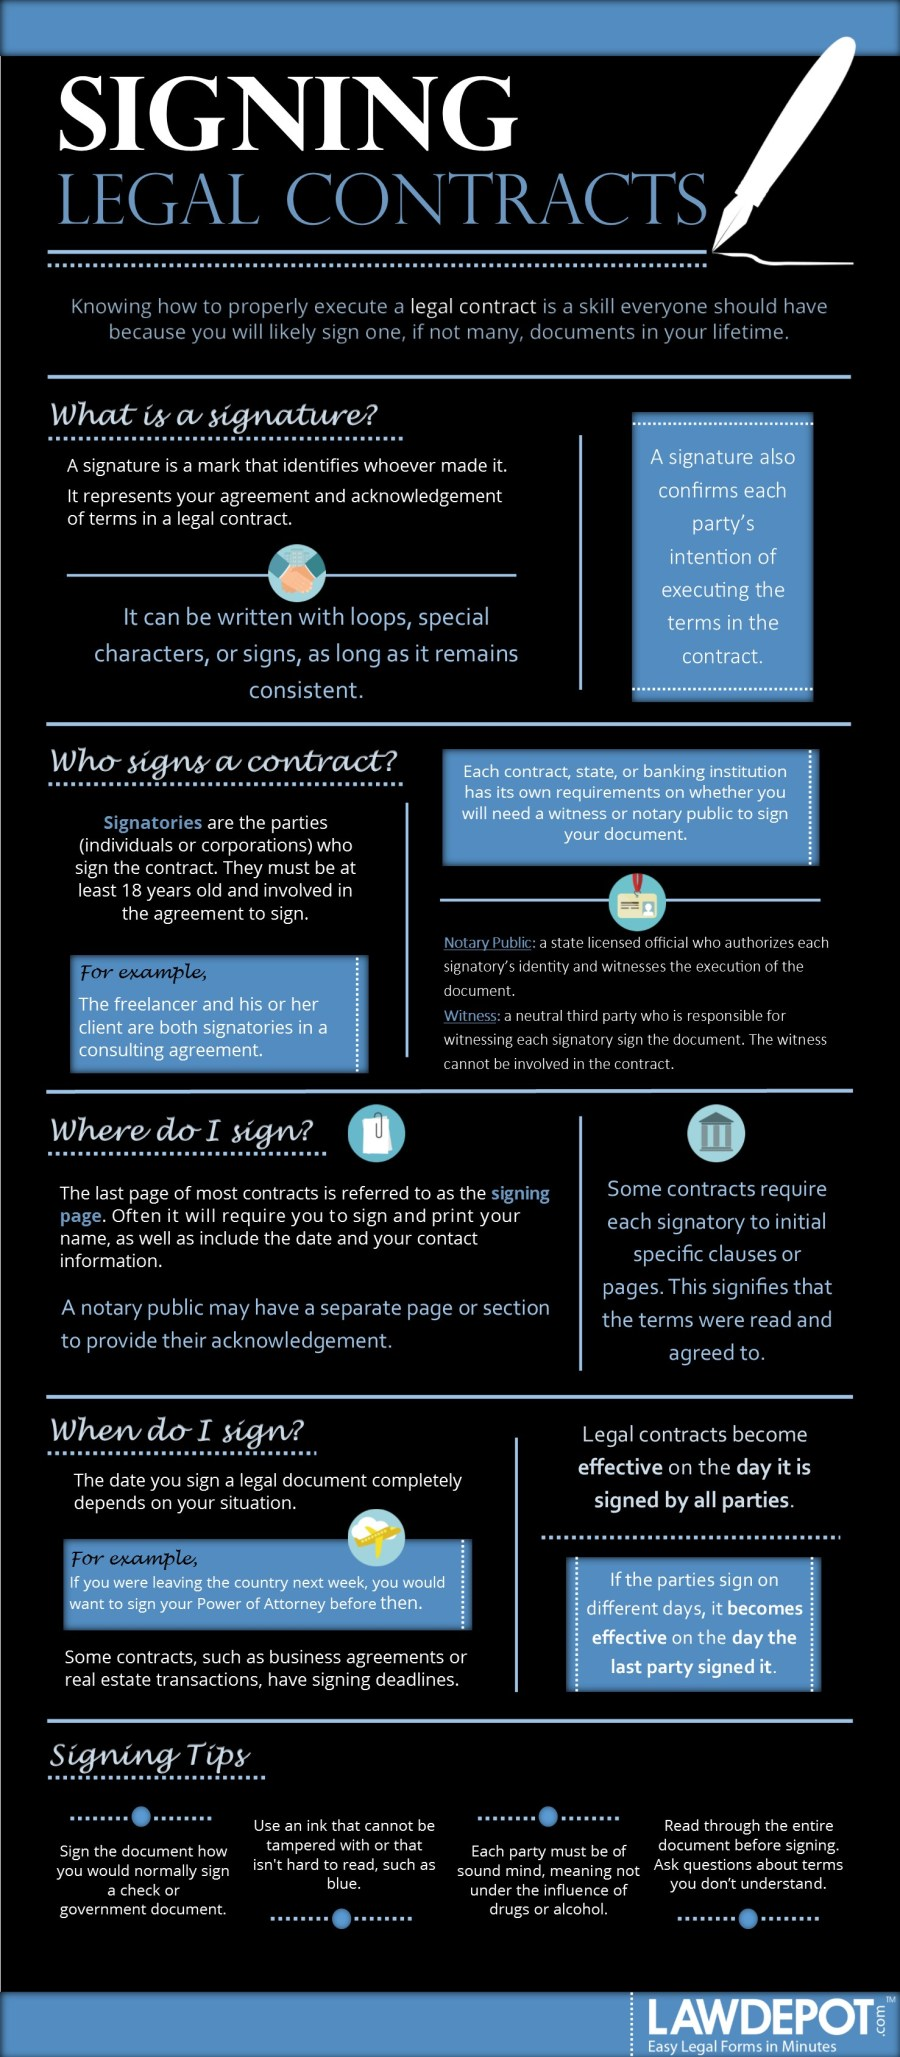 Signing Legal Contracts [Infographic]